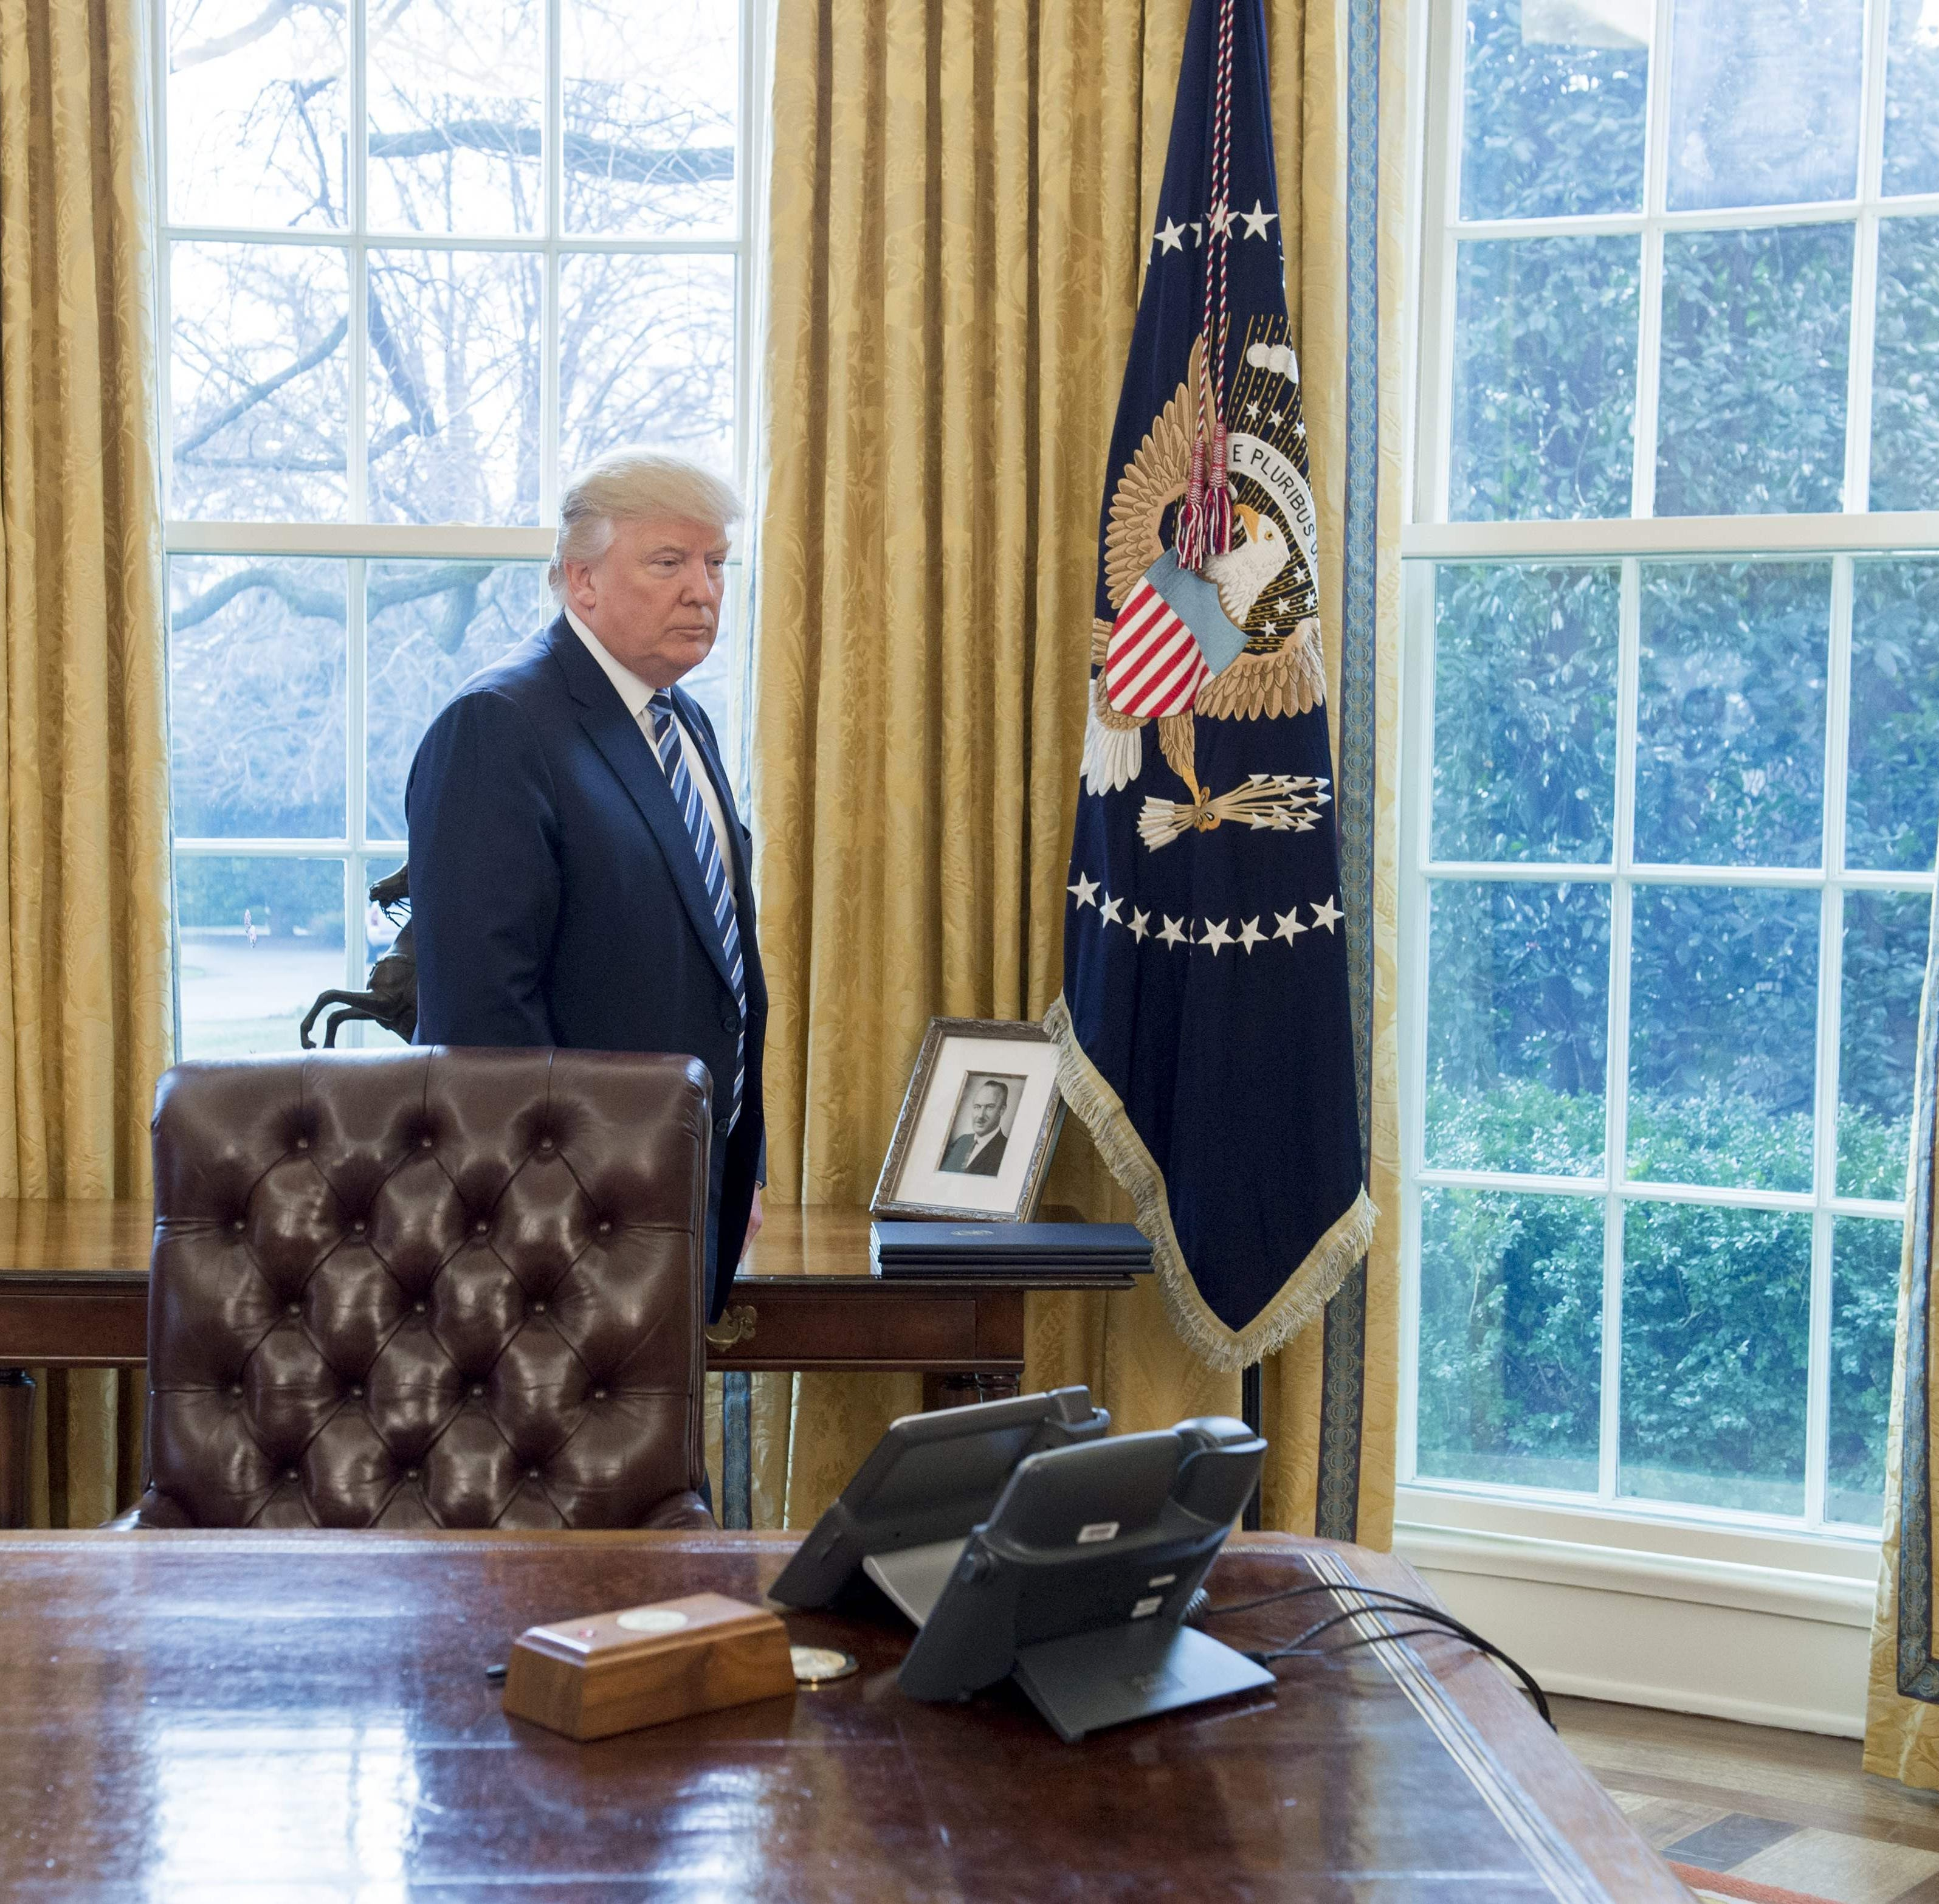 President Donald Trump with a photo of his father, Fred Trump, in the Oval Office on Feb. 09, 2017.